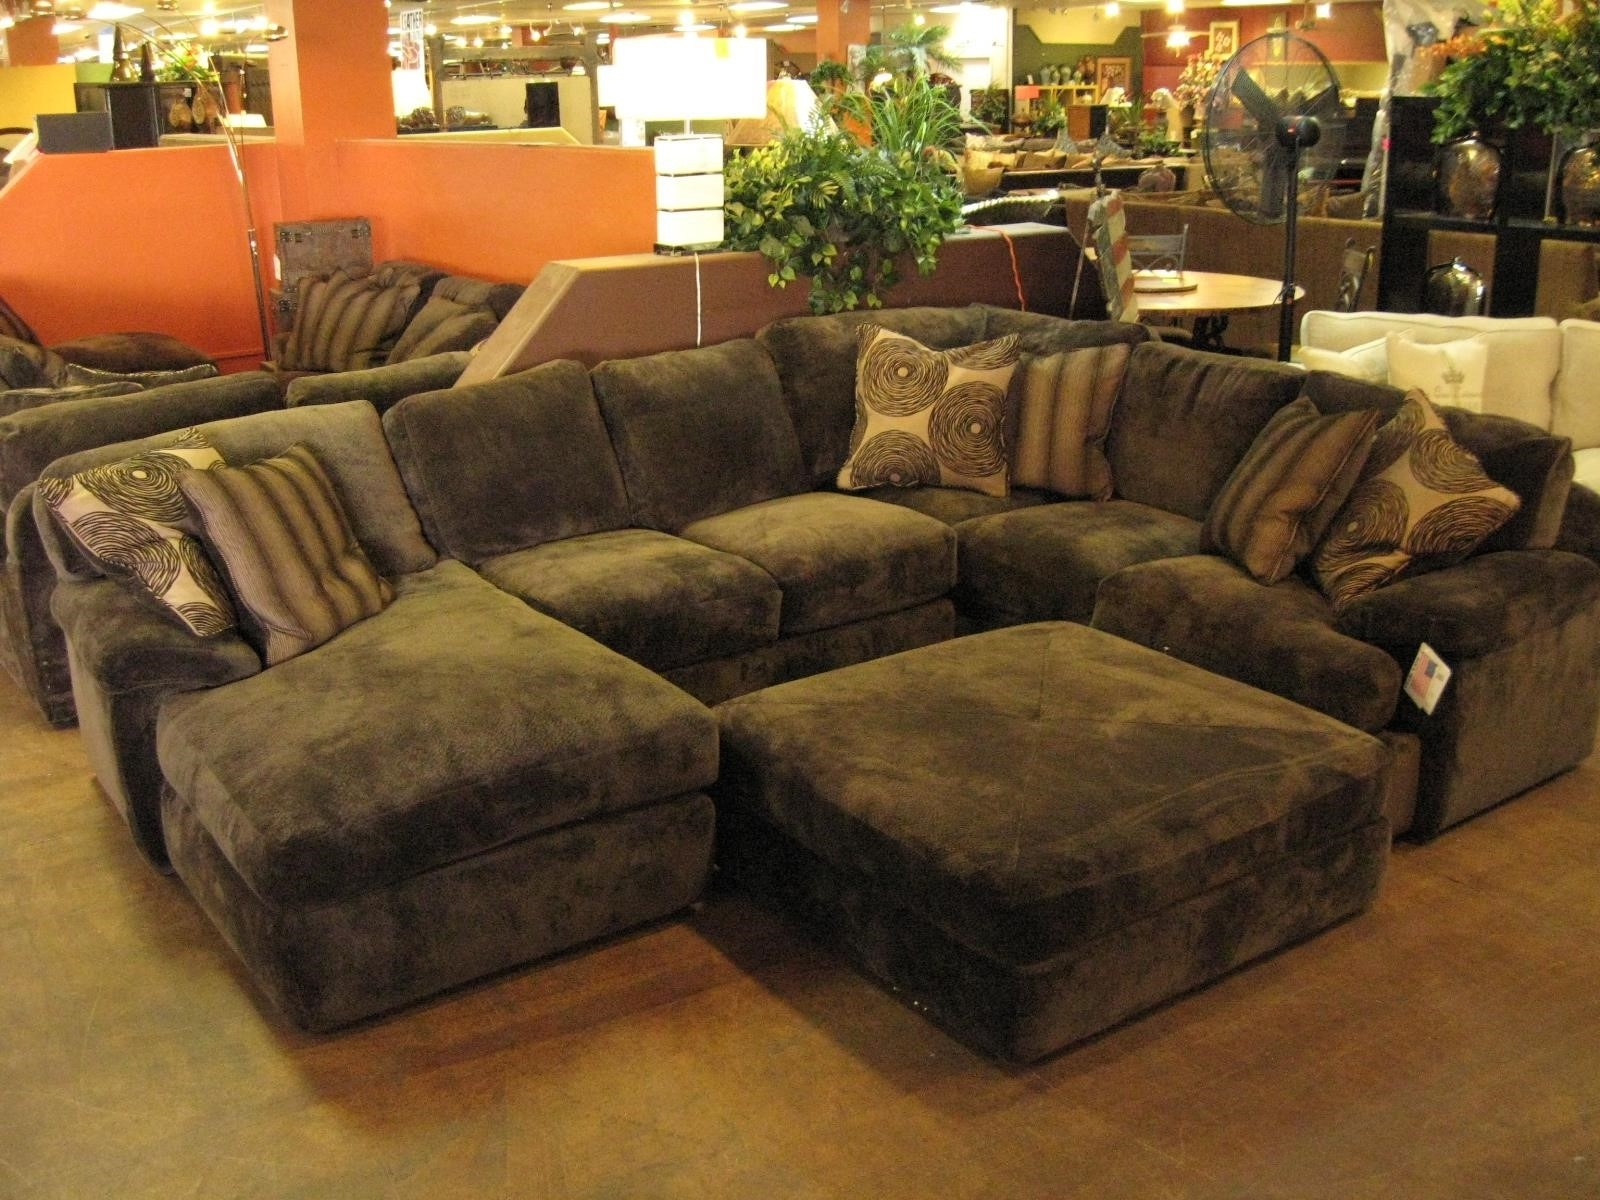 Large Sectional Sofas Inside Preferred Sofa : Magnificent Large Sectional Sofa With Chaise Reclining (View 5 of 15)